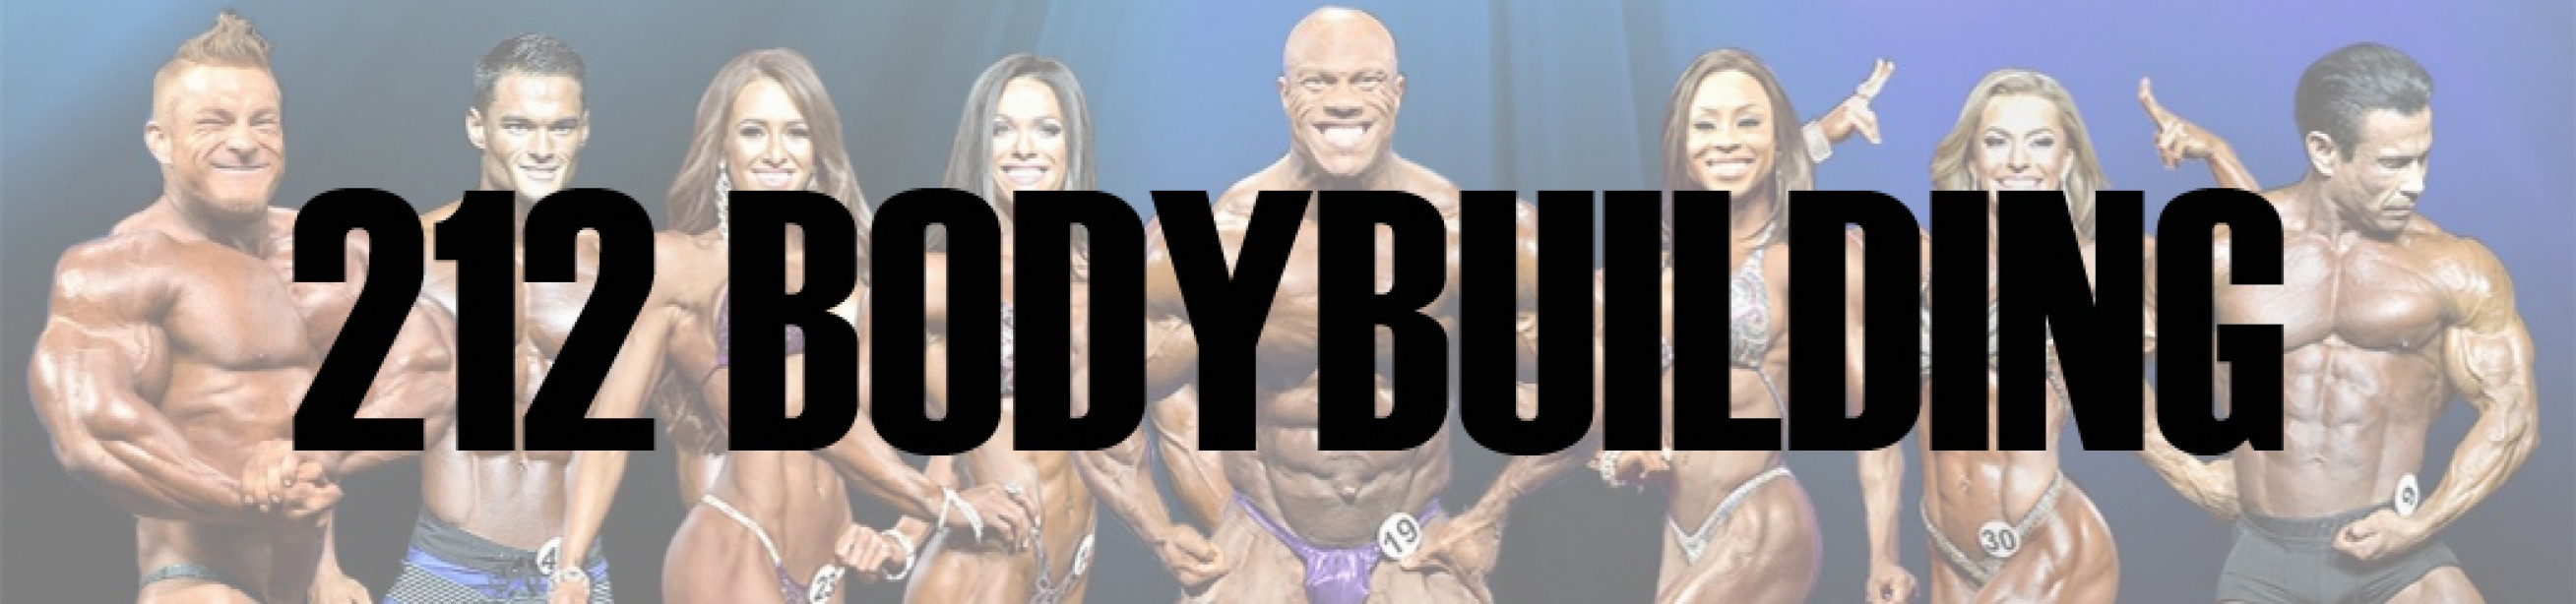 2017 Arnold Classic 212 Bodybuilding Call Out Report